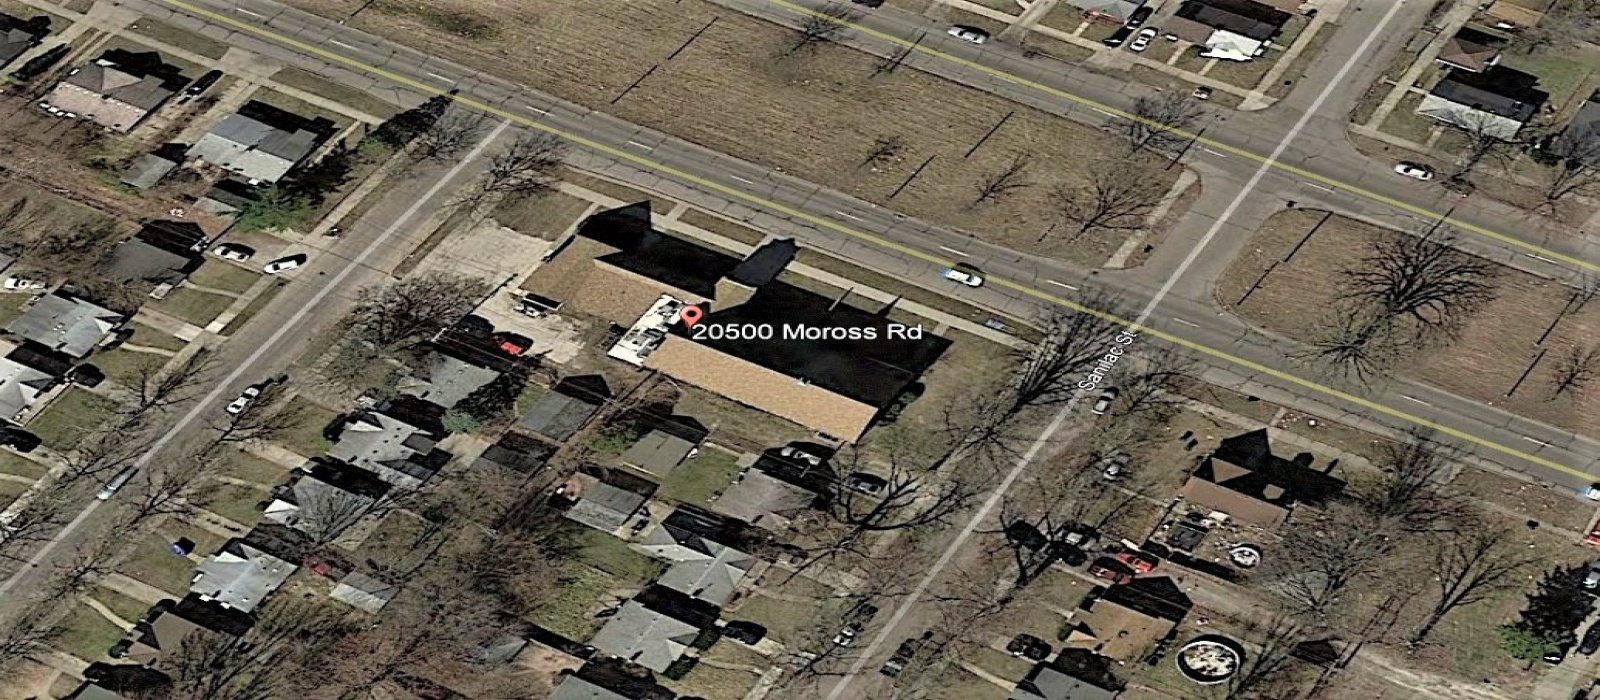 20500 Moross, Detroit, Michigan 48224, ,Office,For Sale,20500 Moross,1043